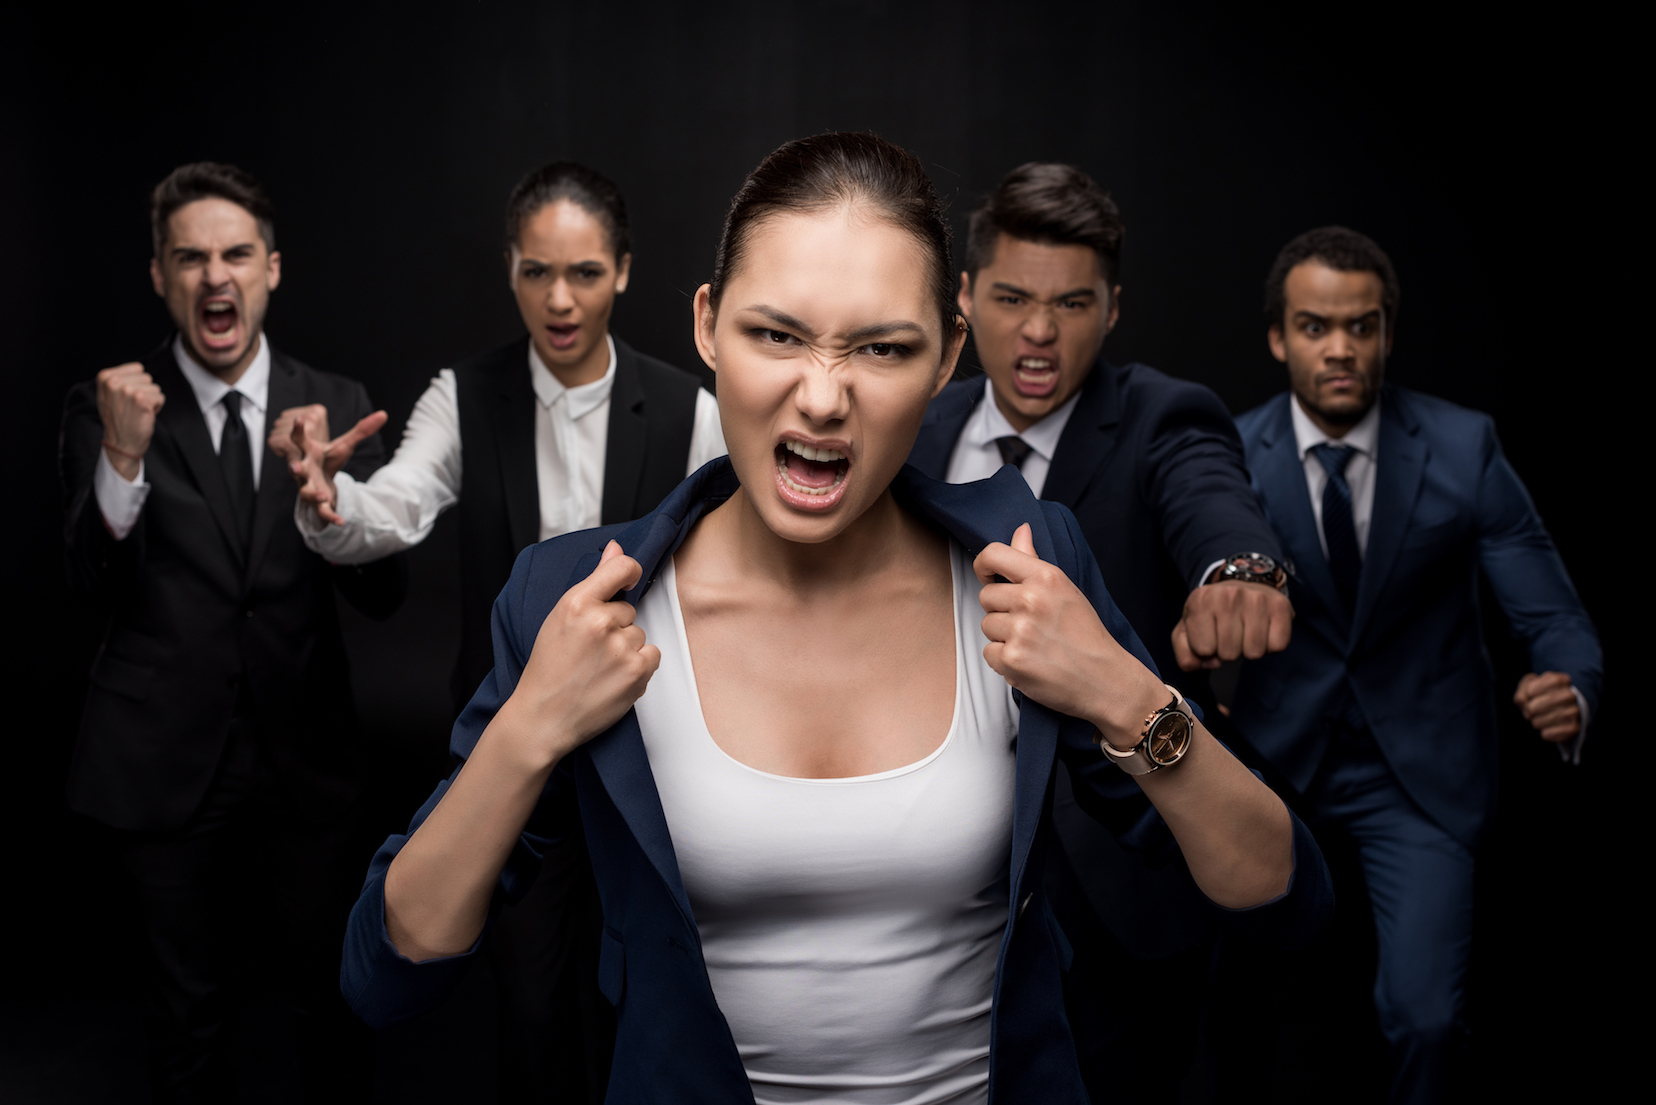 workplace bullying resistance, workplace bullying